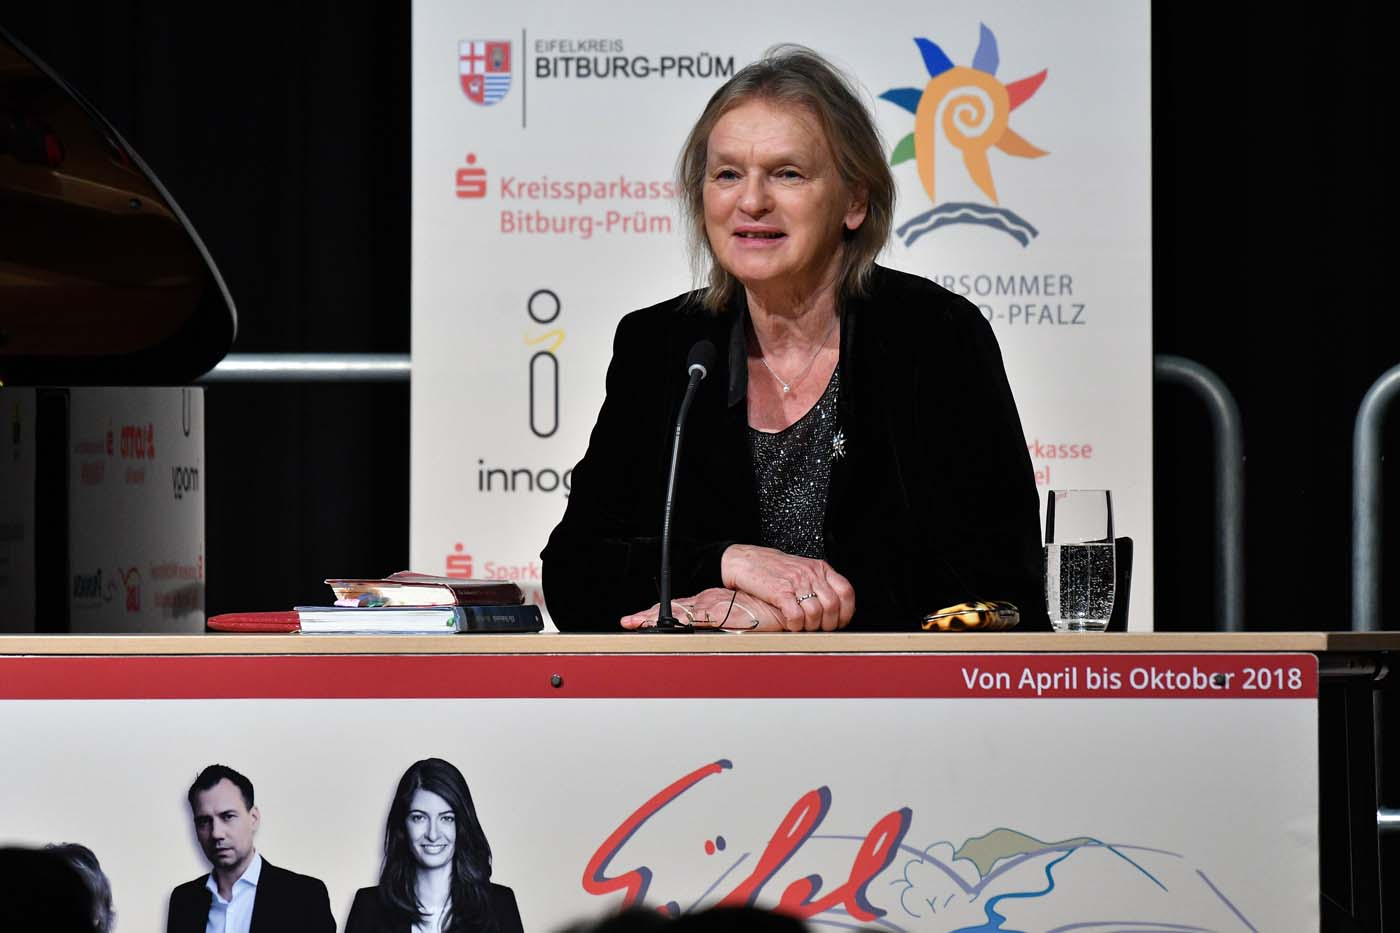 Elke Heidenreich am 27. April 2018 in Bitburg